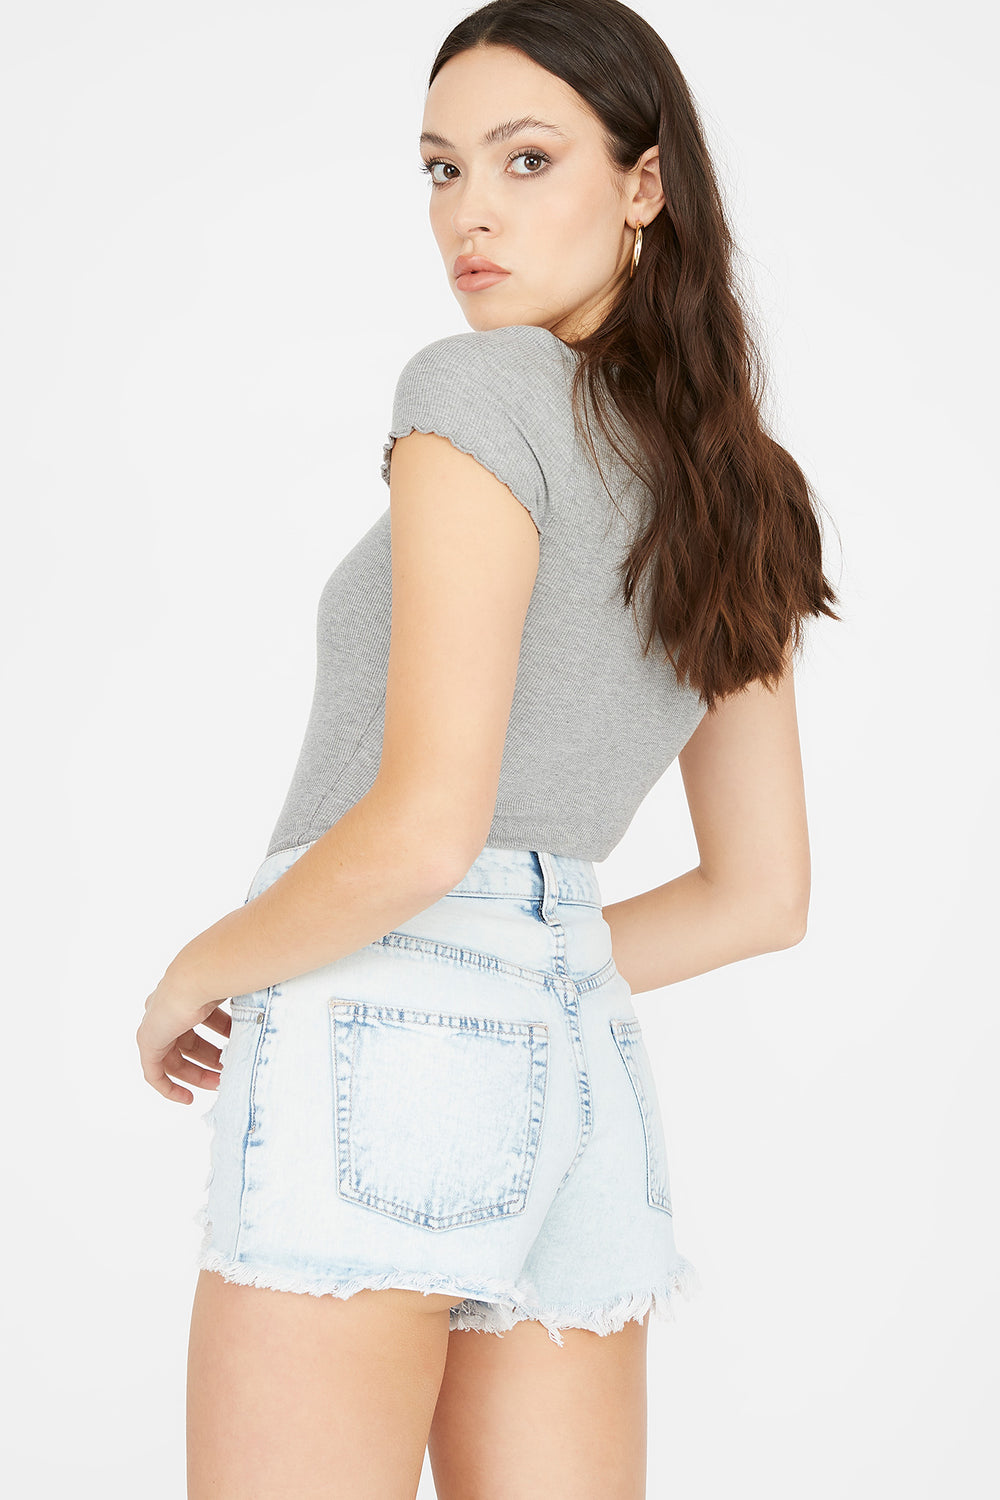 Refuge Chelsea High-Rise Light Wash Distressed Denim Short Light Denim Blue